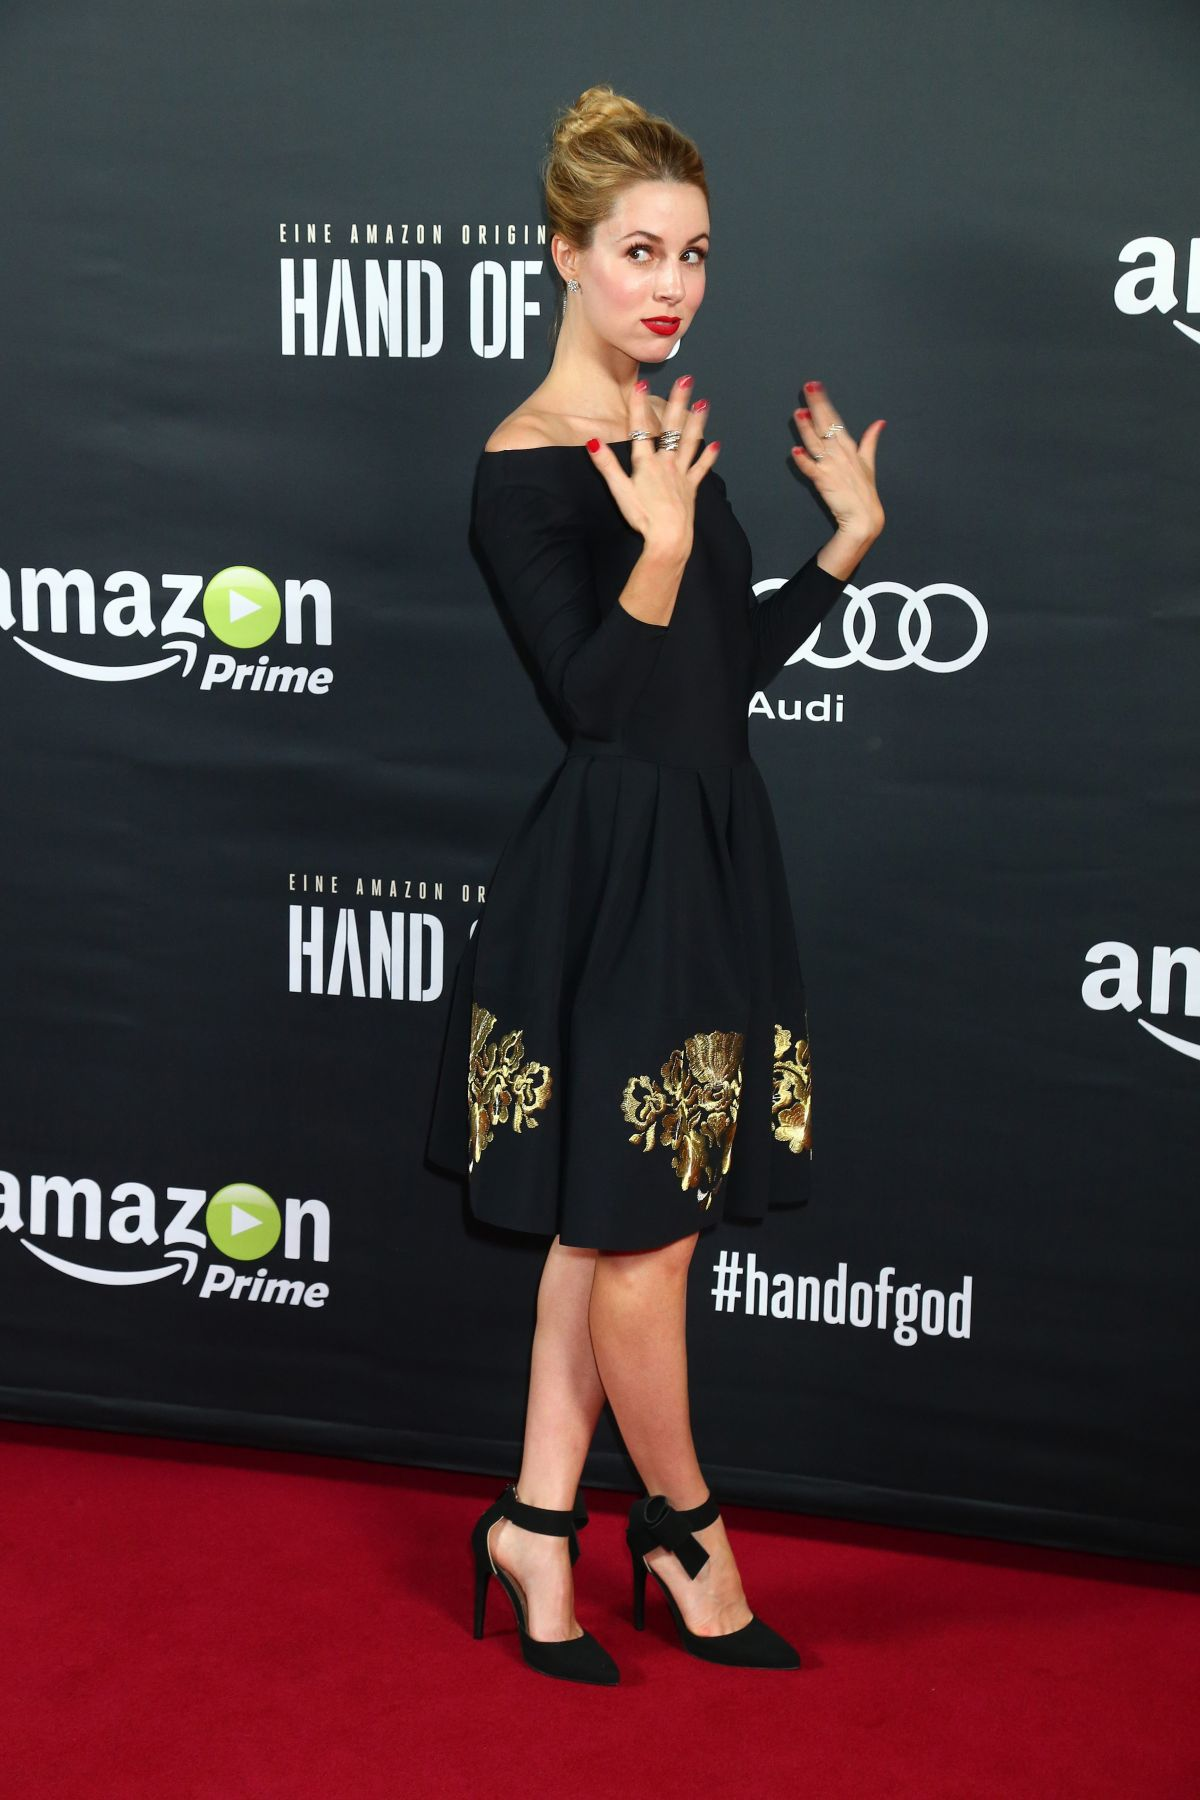 ALONA TAL at Hand of God Premiere in Berlin 08/31/2015